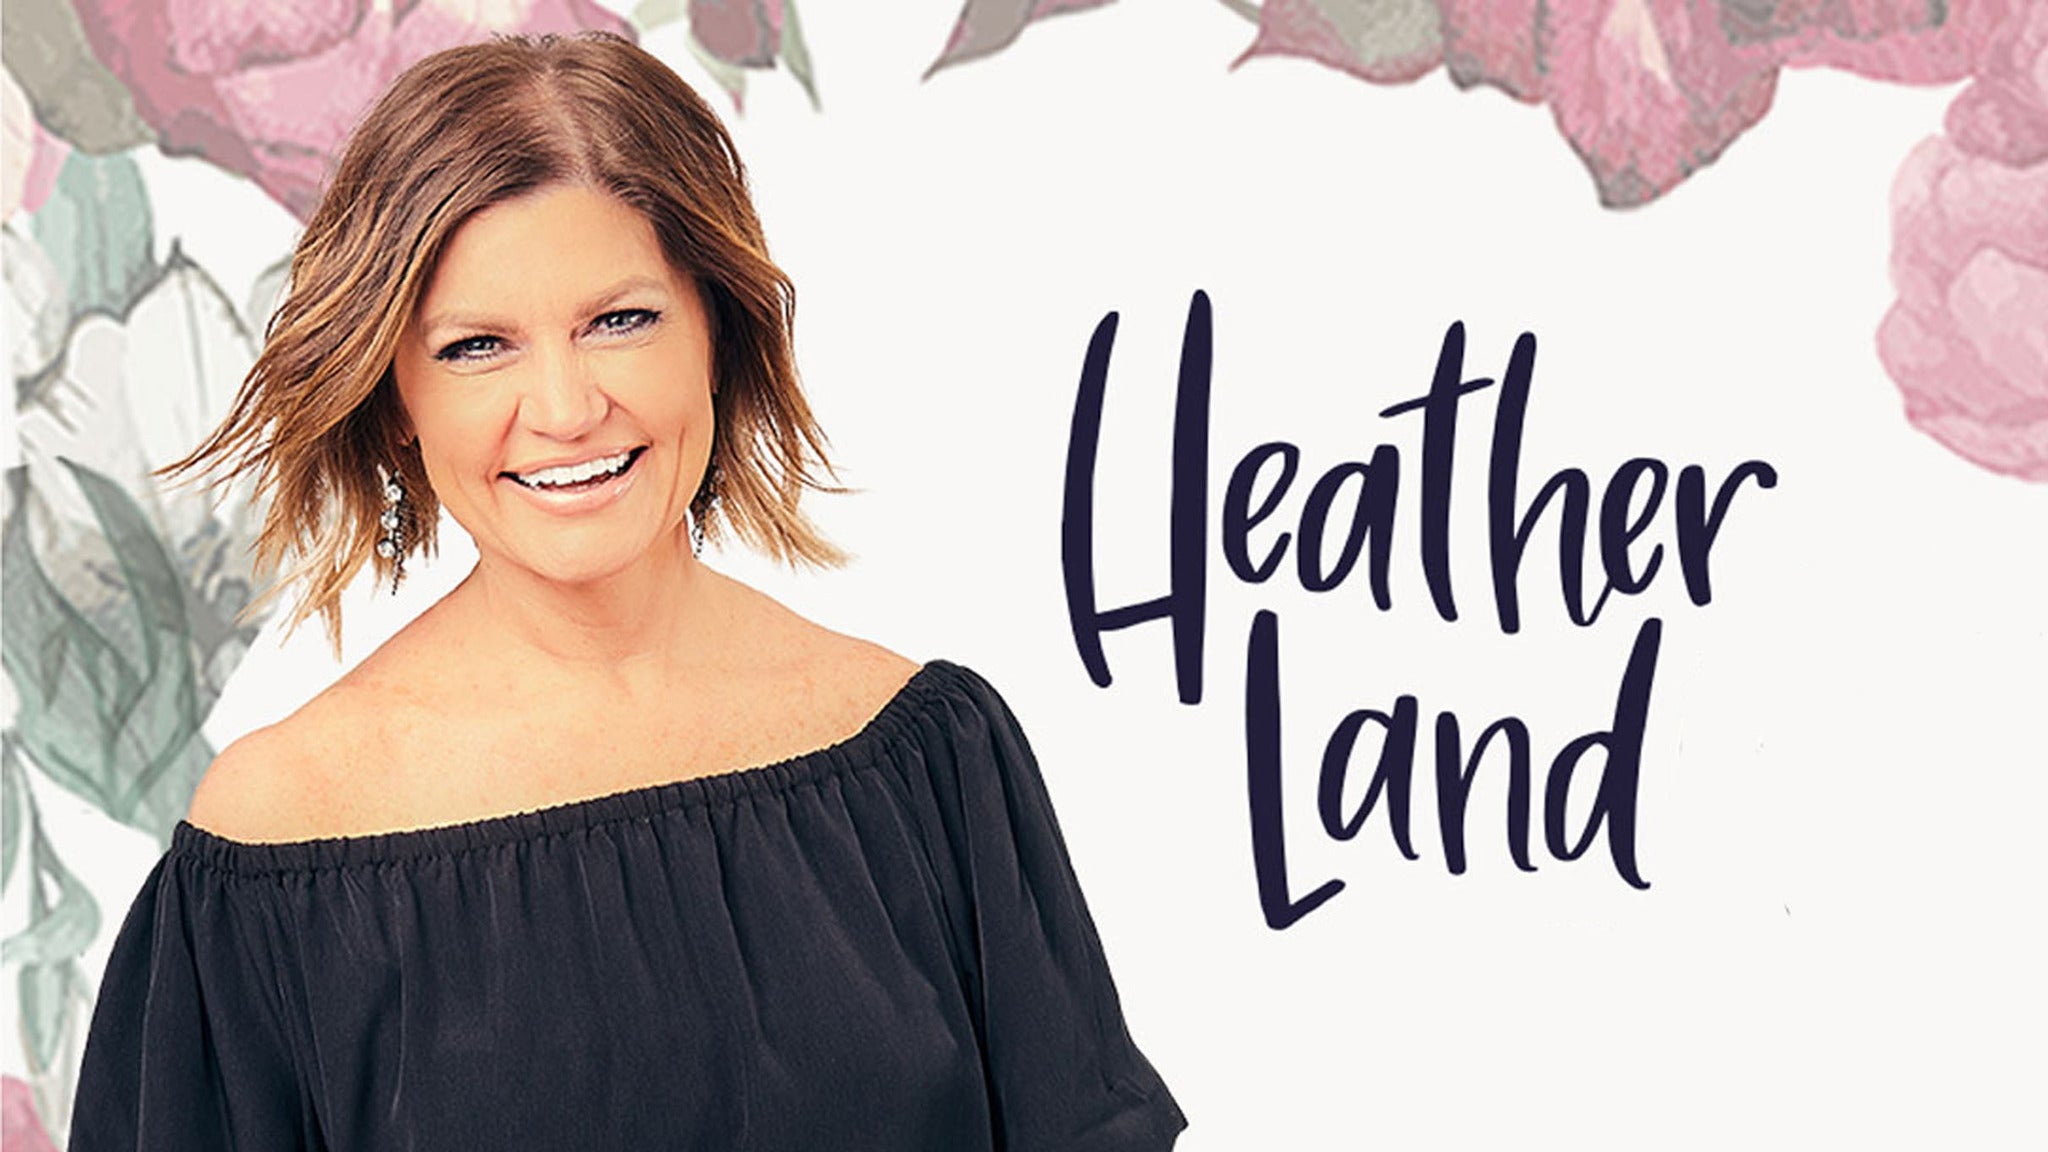 Jen Hatmaker and Heather Land: Hot Summer Nights Tour